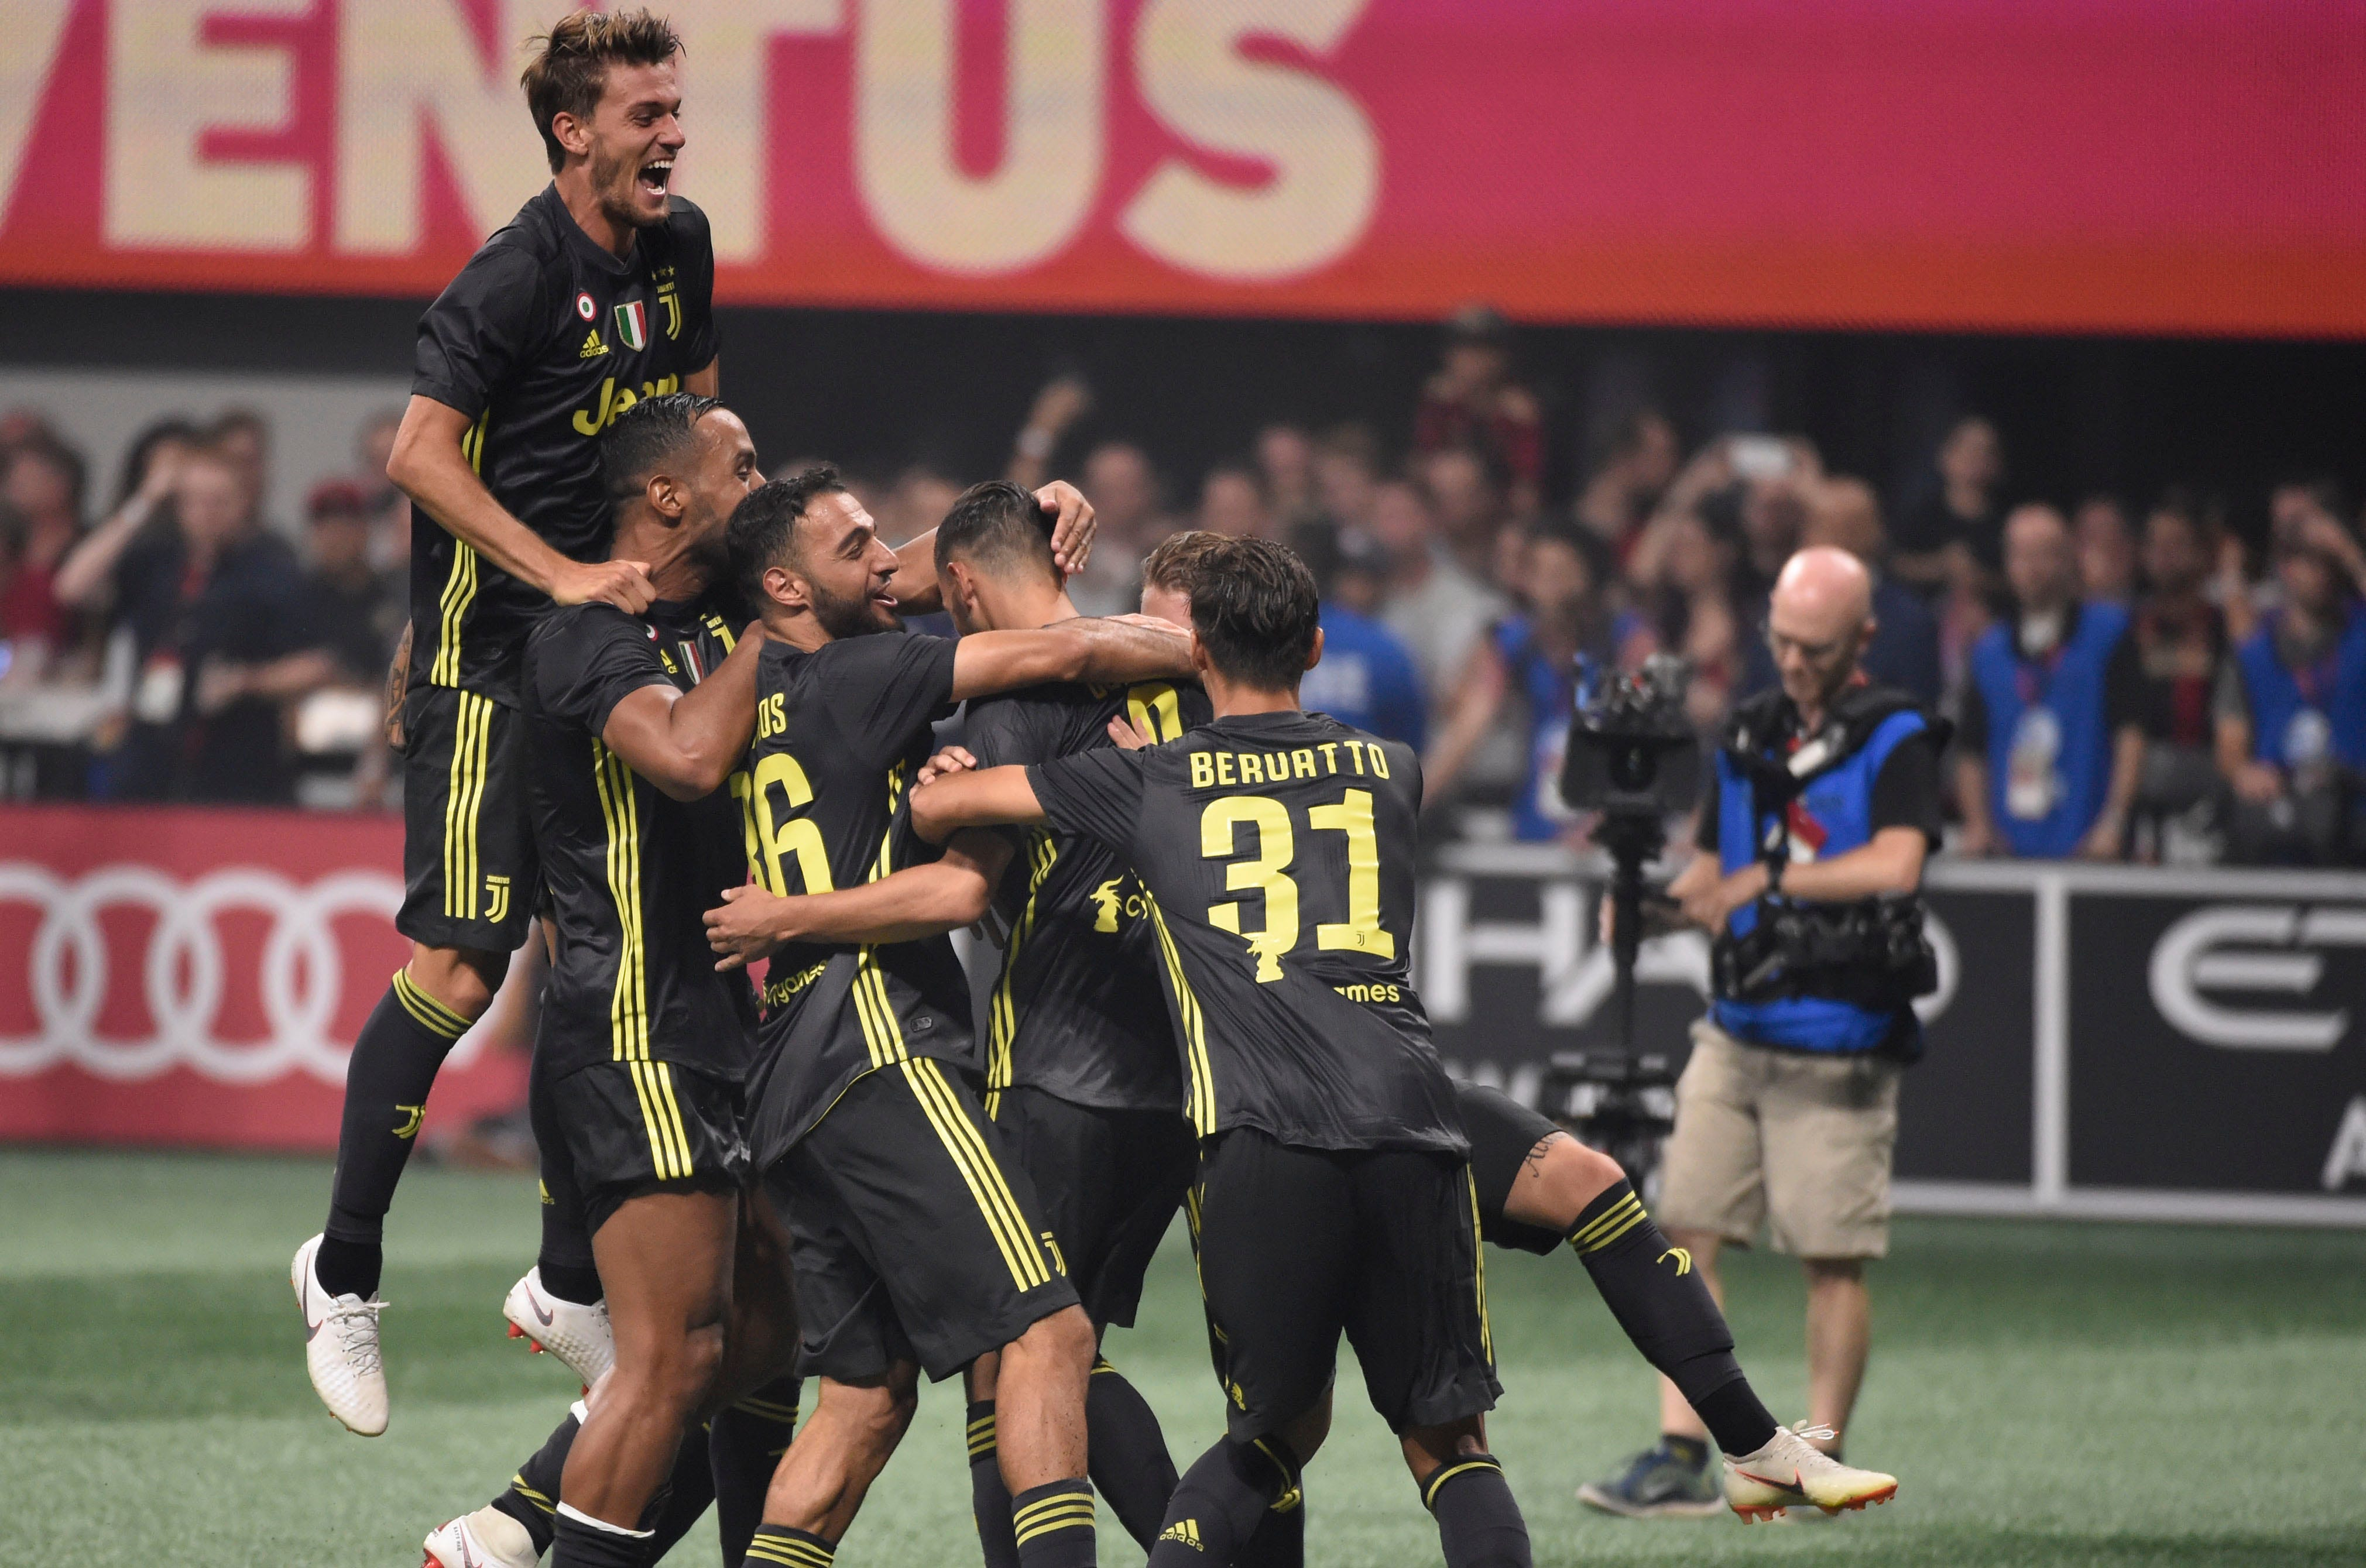 more photos 4098a 70d39 Juventus wins MLS All-Star Game on penalties in front of record crowd  Juventus scored on all its penalty kicks following a 1-1 draw vs. the MLS  All-Stars to ...